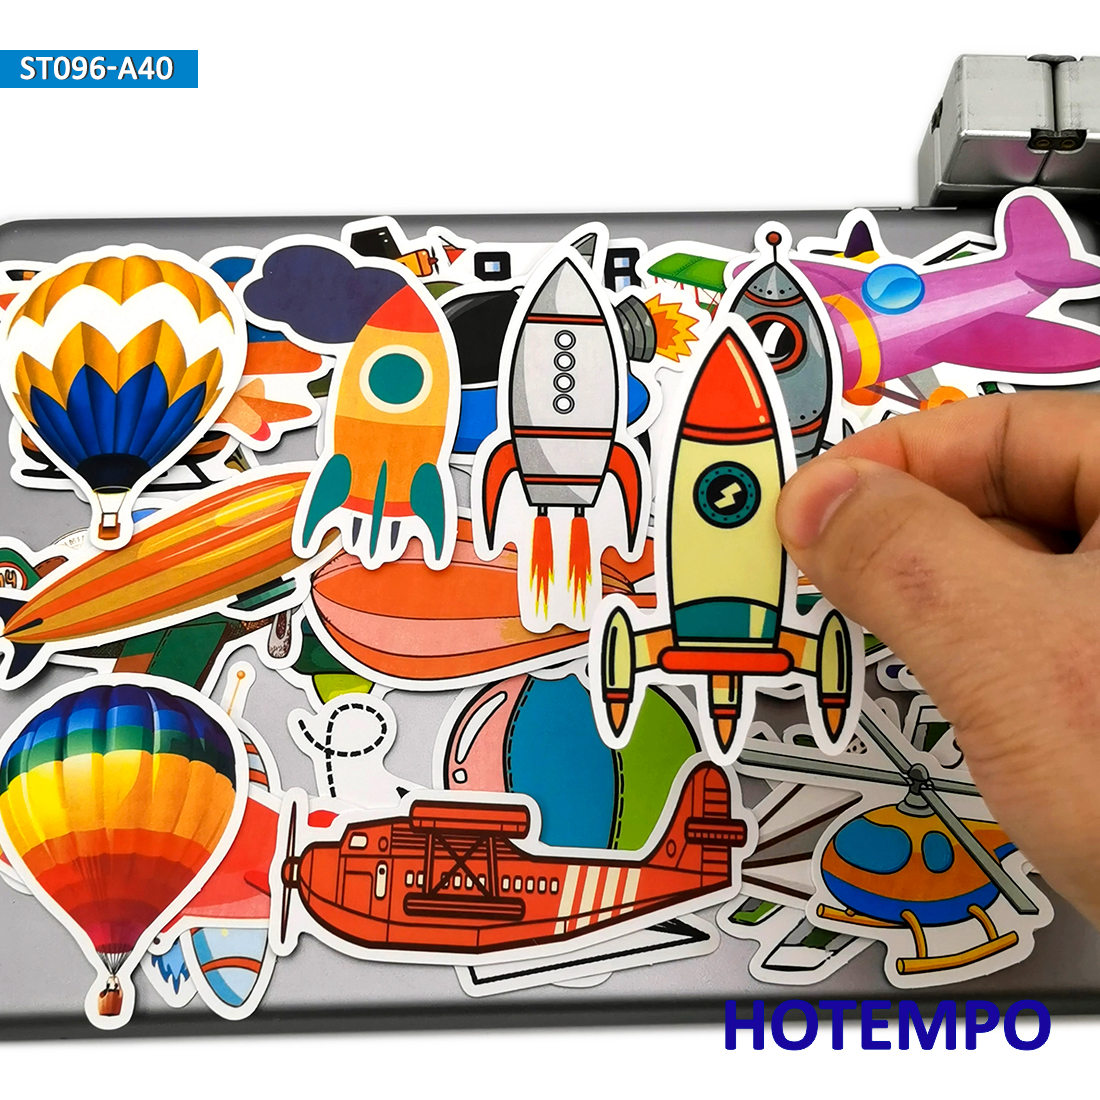 40pcs Airplane Airship <font><b>UFO</b></font> Rocket Cartoon Style <font><b>Stickers</b></font> Toys for Children Kids Scrapbook Stationery Mobile Phone Laptop <font><b>Sticker</b></font> image